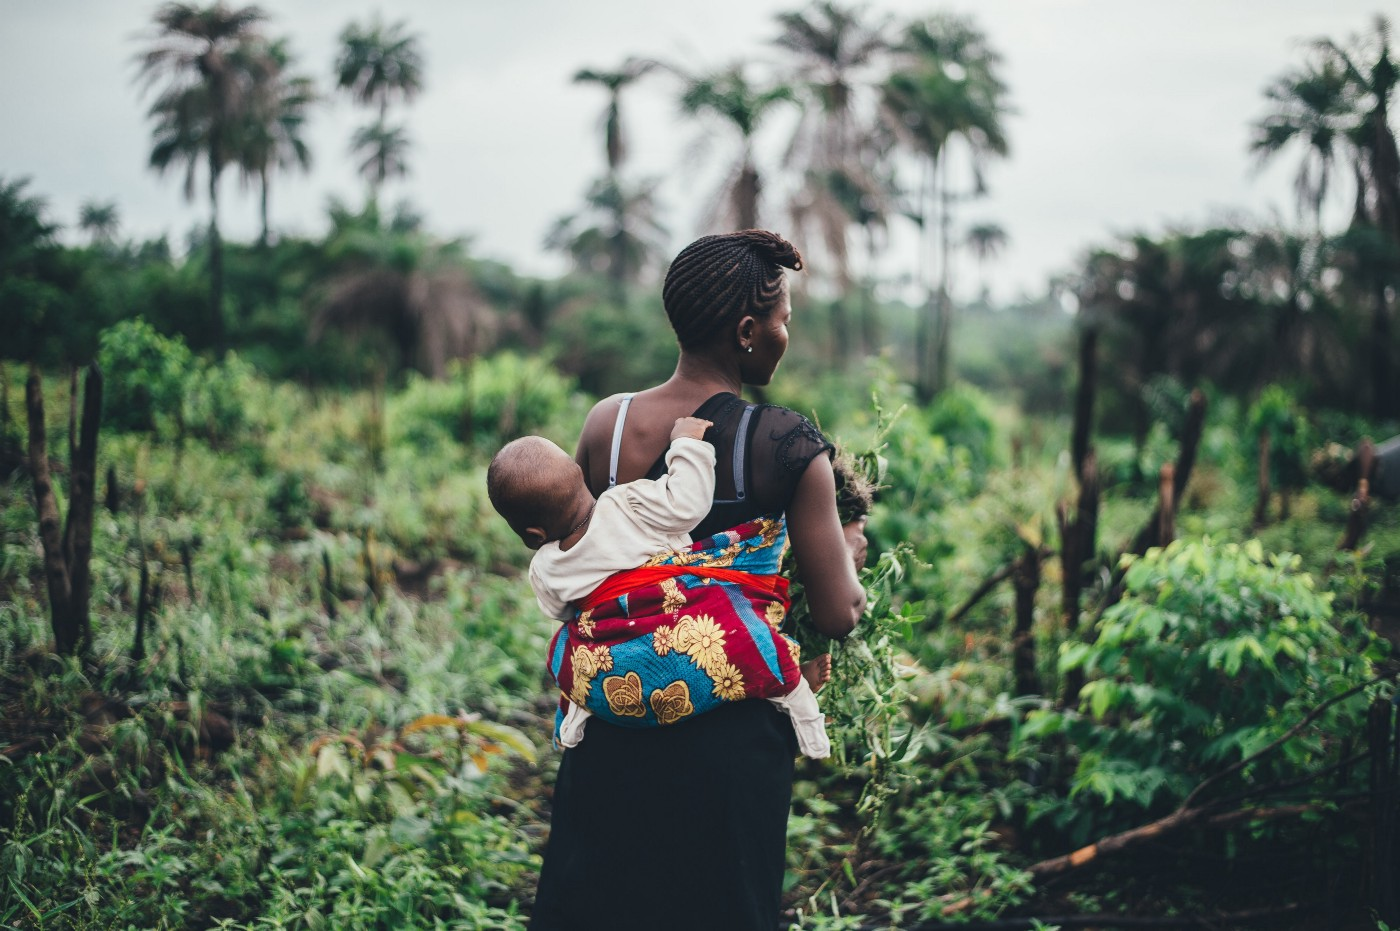 Black mother carrying a child on her back in the middle of a field